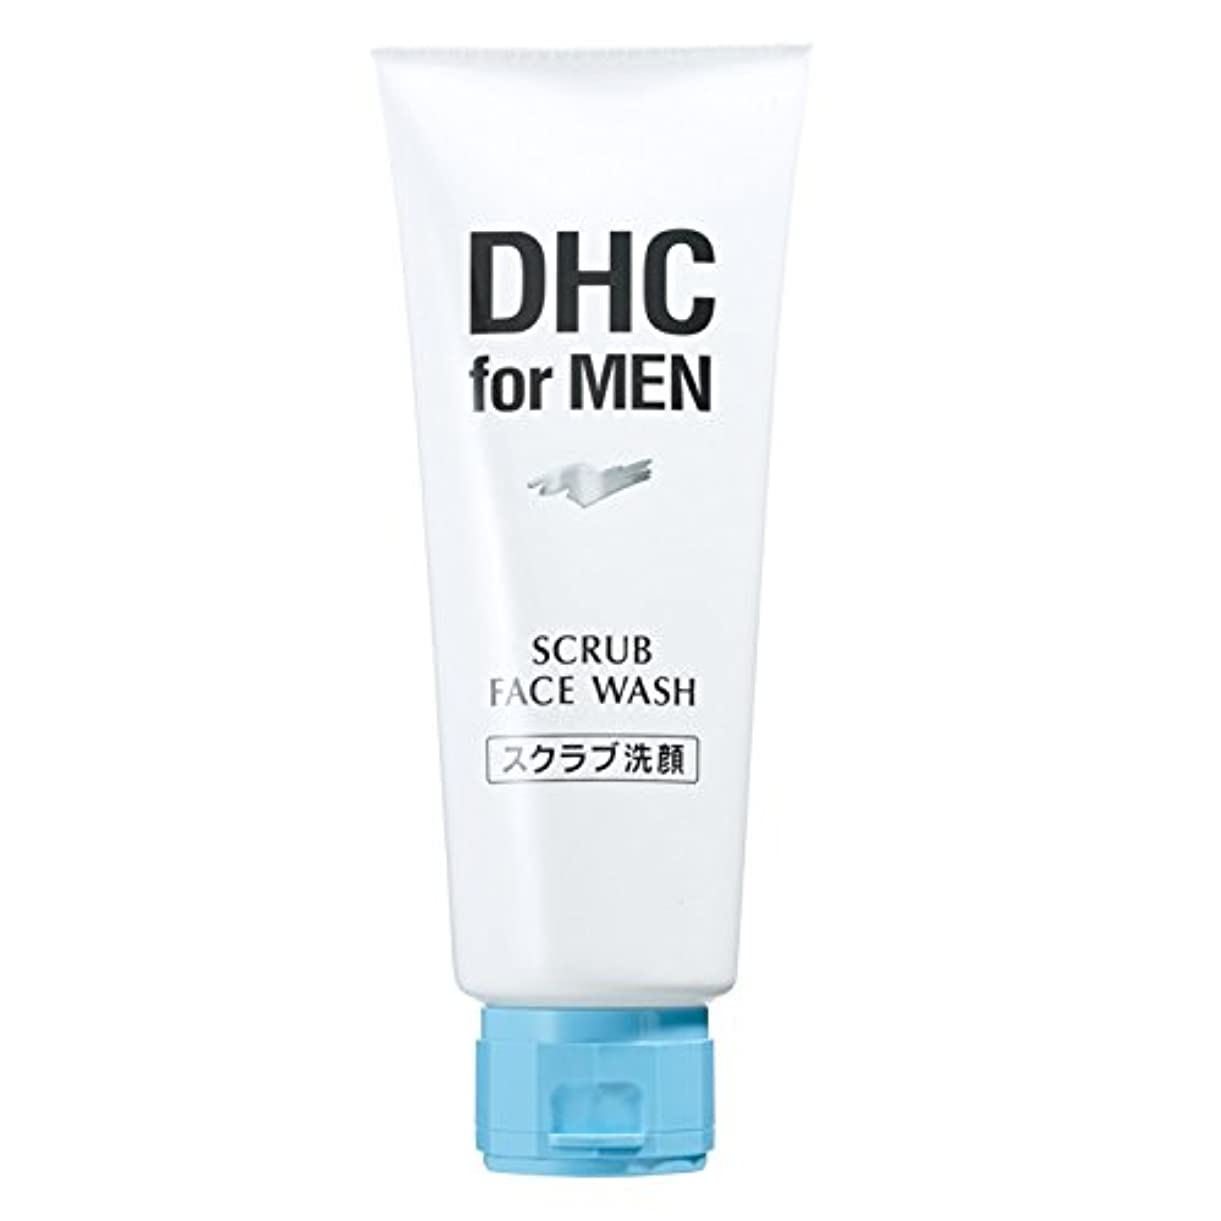 DHC スクラブ フェース ウォッシュ 【DHC for MEN】